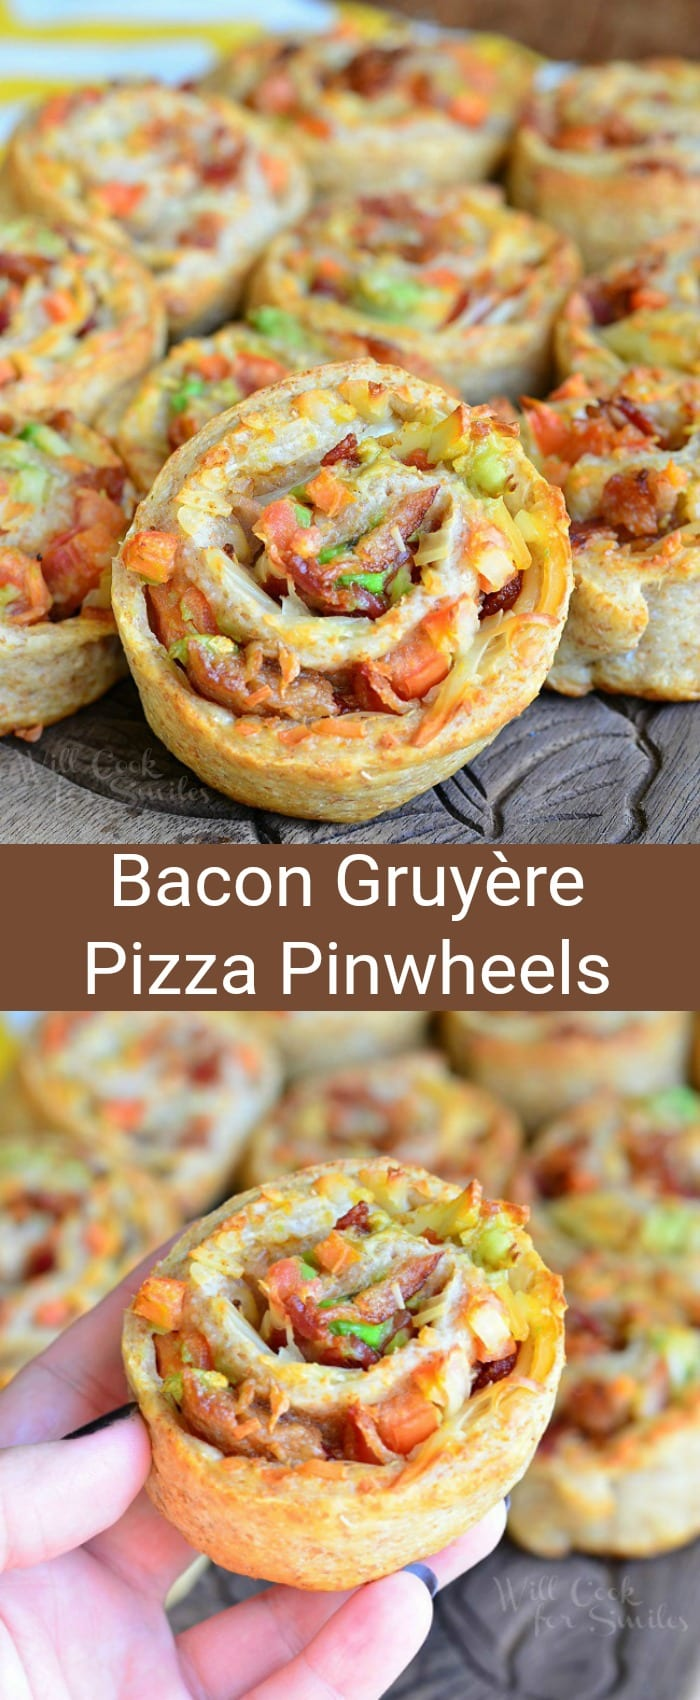 Bacon Gruyere Pizza Pinwheels. Great warm appetizer made with whole grain pizza dough, crispy bacon, Gruyere cheese, tomato and avocado. #appetizer #snack #pinwheels #pizza #bacon #partyfood